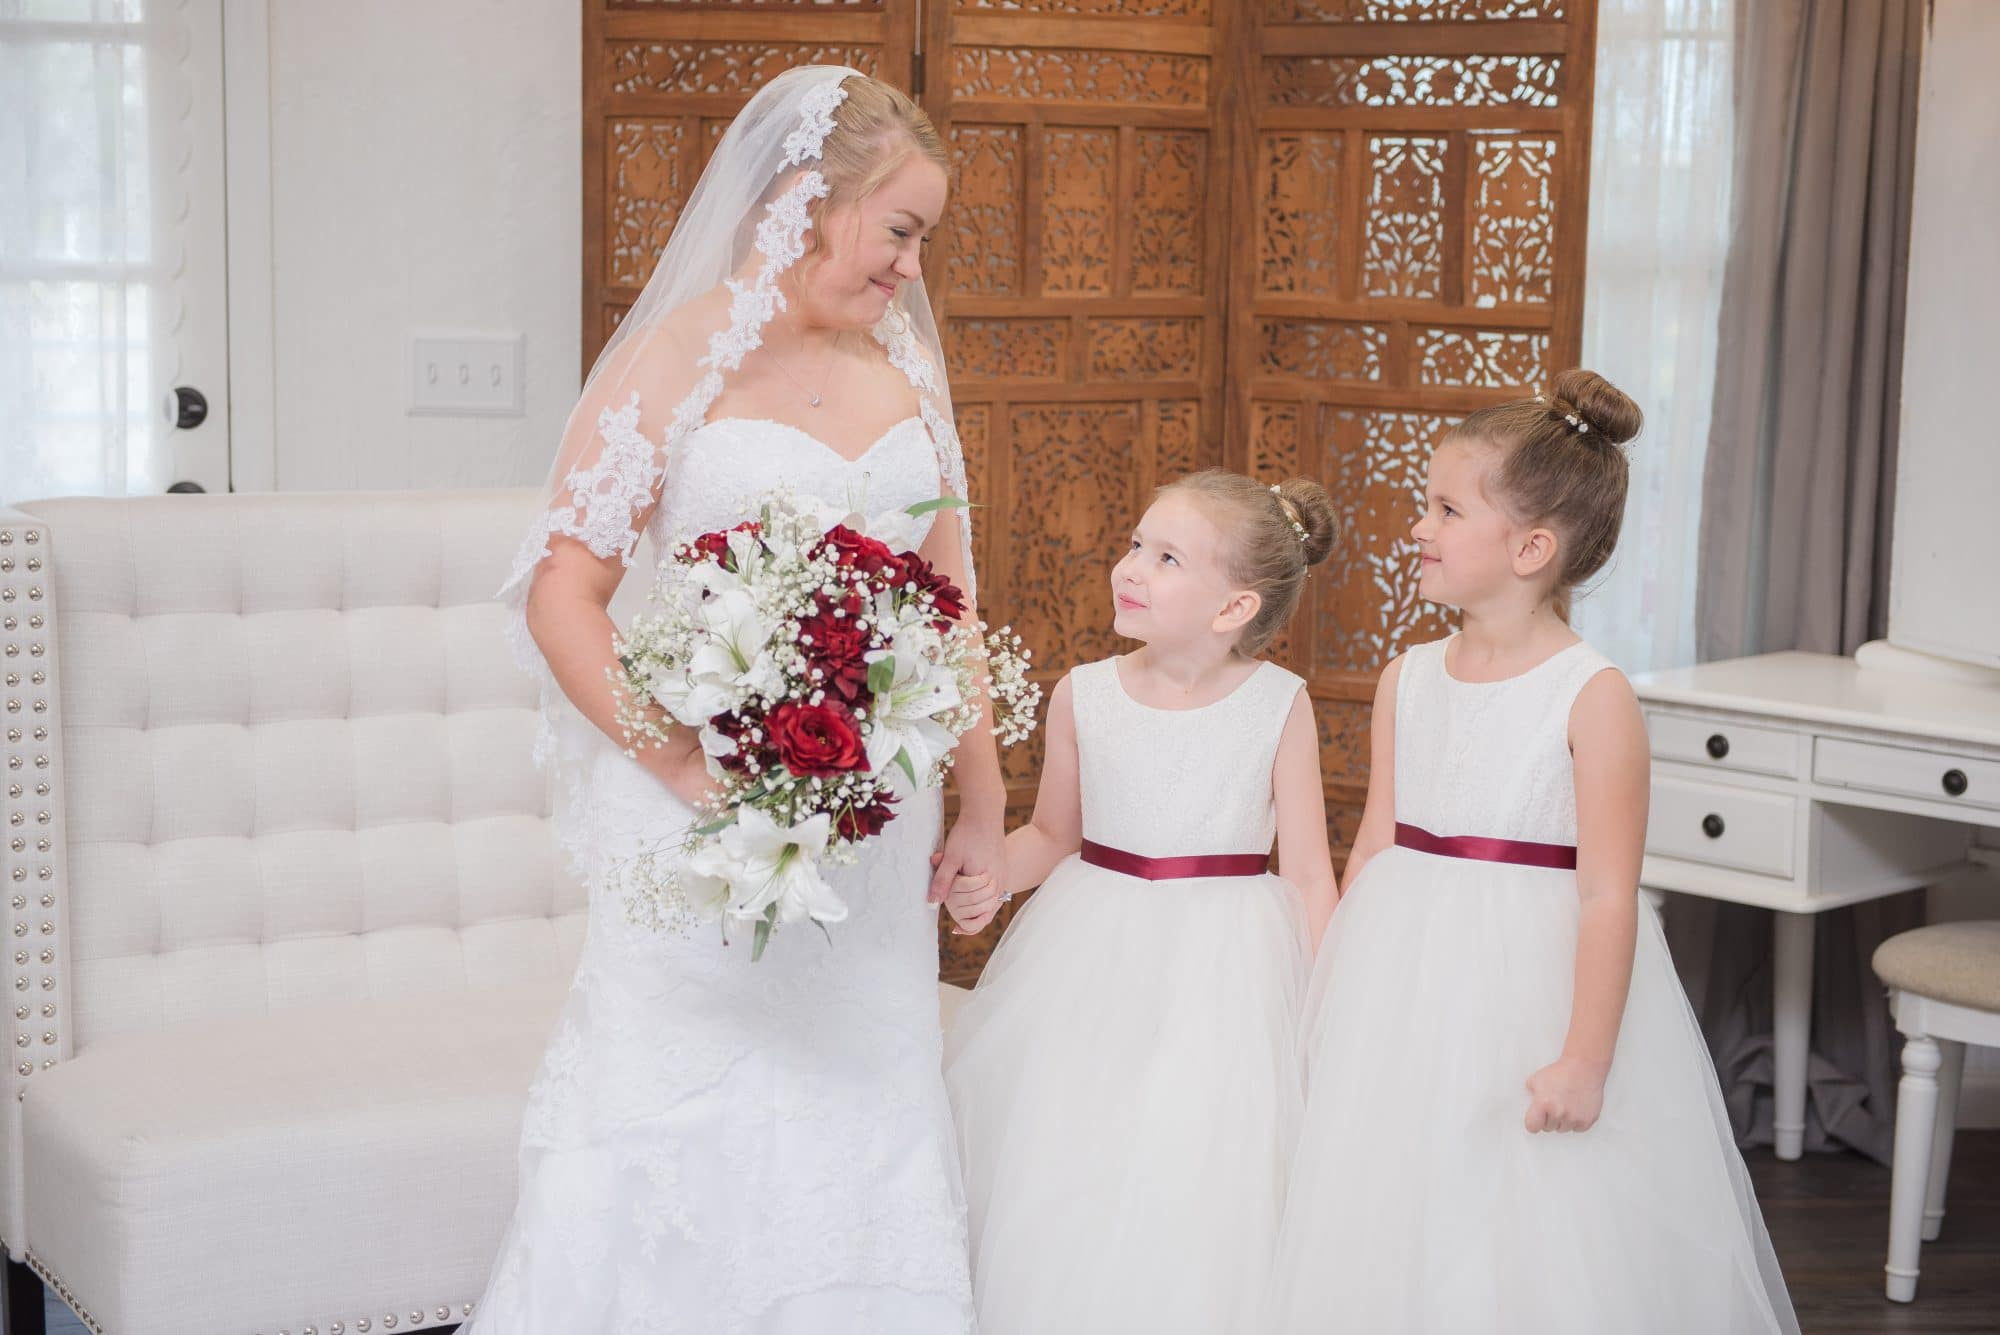 Brittany in getting ready room with her flower girls.